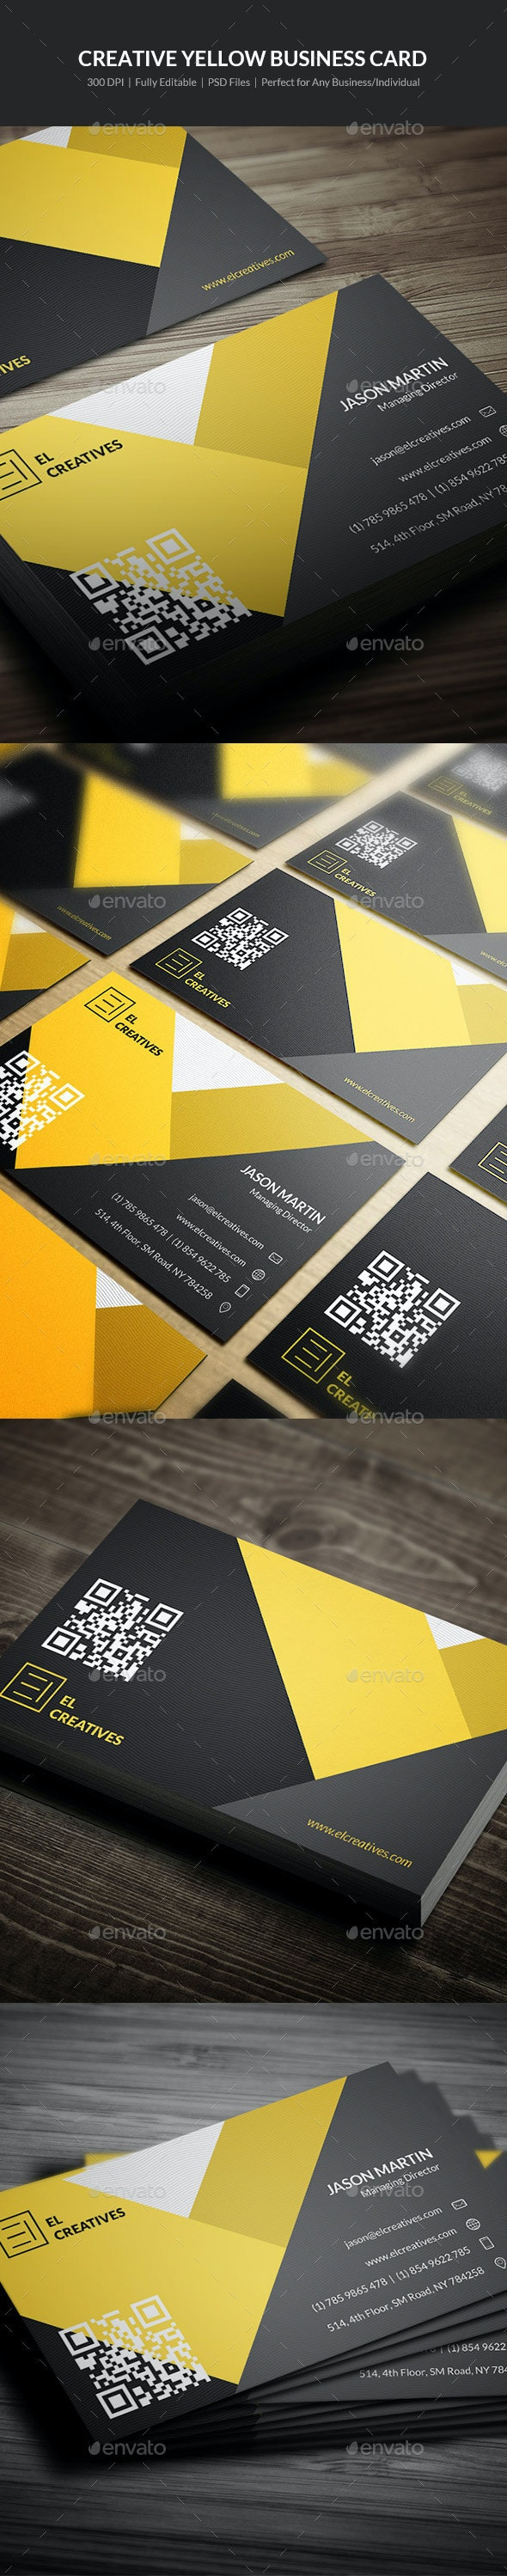 Creative Yellow Business Card - 10 - Creative Business Cards